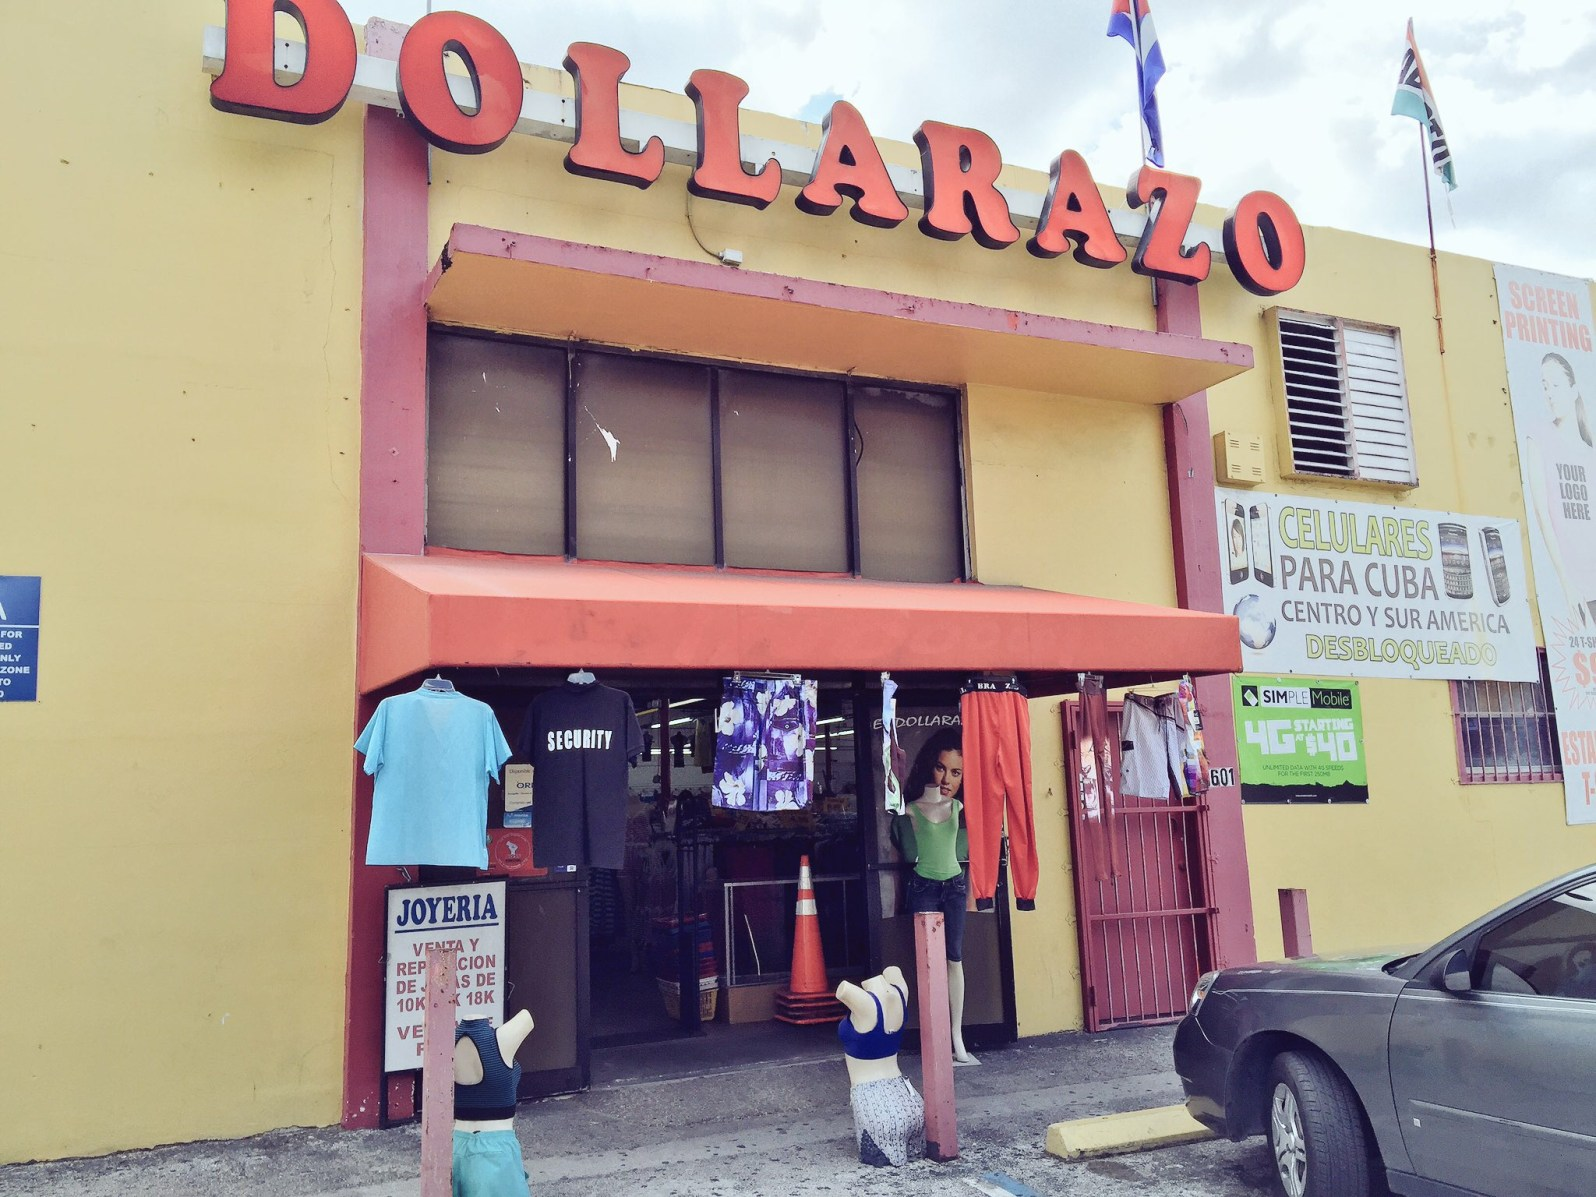 In 1998, when dollar stores where gaining in popularity, Blanco opened El Dollarazo to sell sundry dollar items. (Courtesy of Maria de los Angeles)